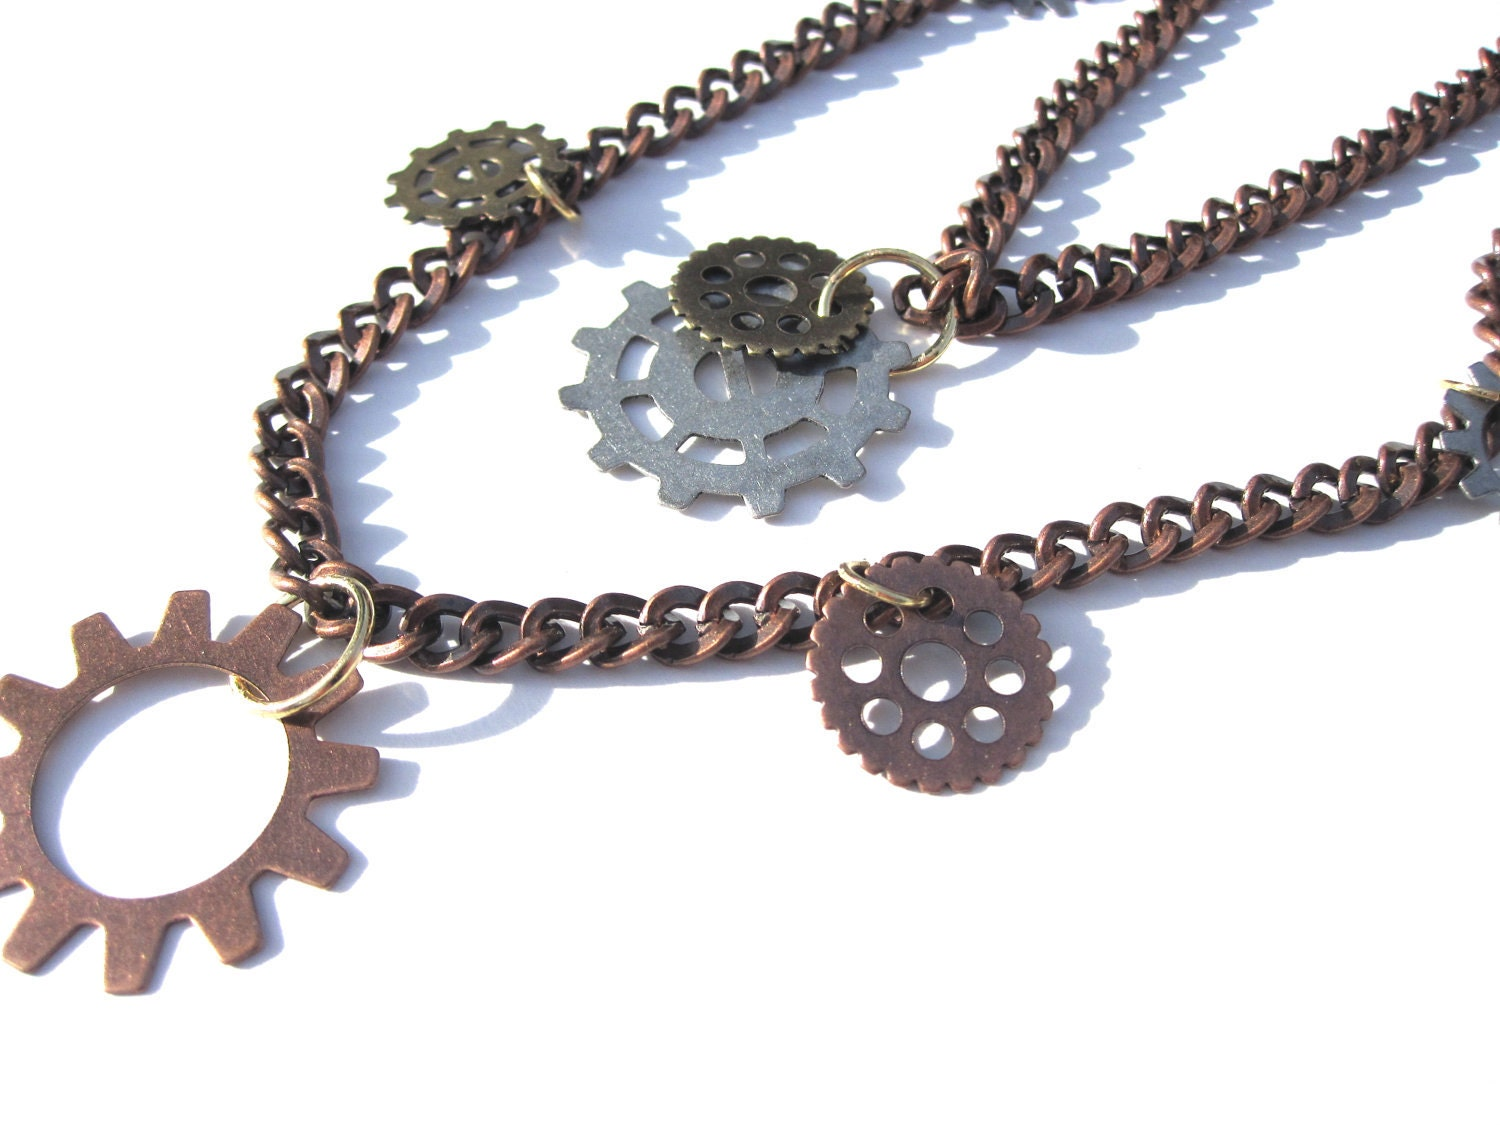 Industrial Gears Mixed Metal Necklace - Gold Copper Silver - Women's Gifts